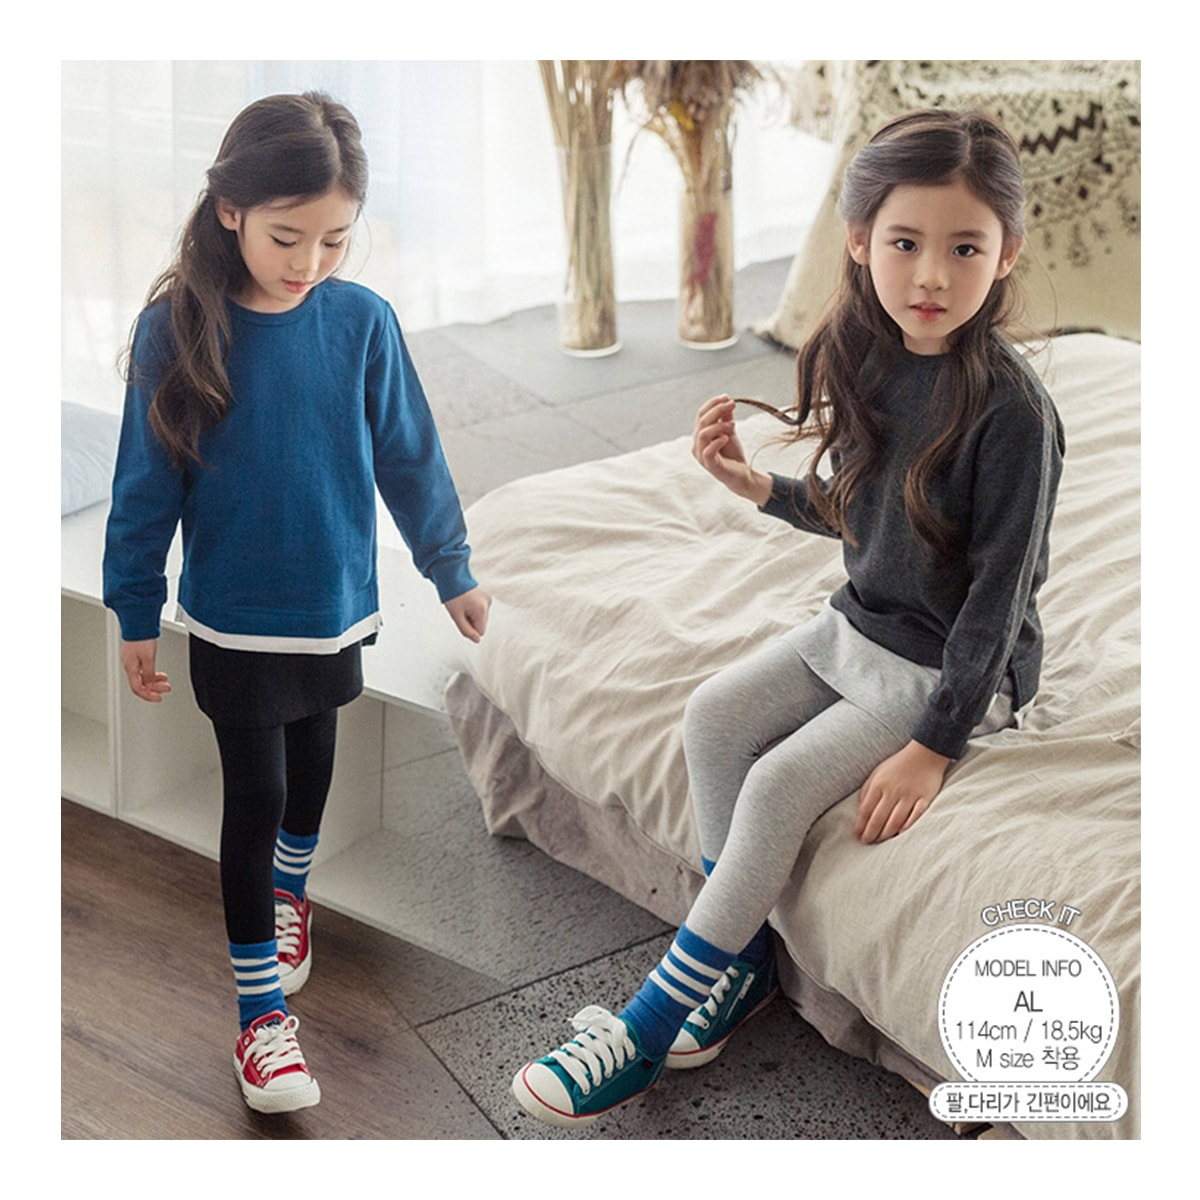 Yamibuy.com:Customer reviews:MODELAMI Kid Girl Stretch Cotton Skirt Leggings #Grey Size S(3-4 years)